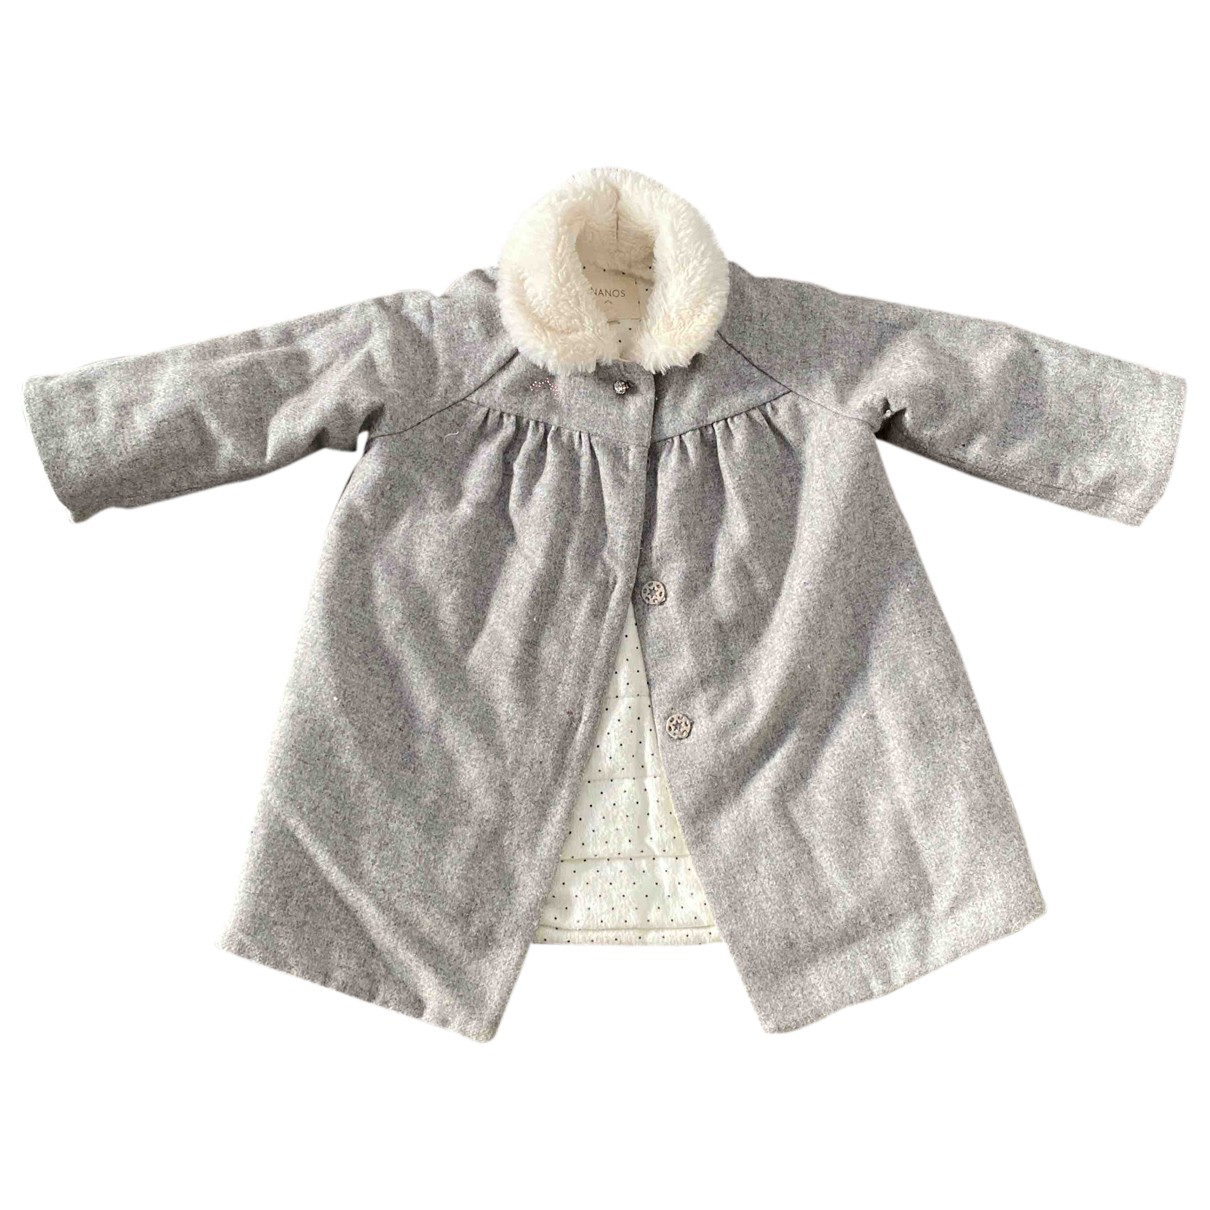 Nanos N Grey Wool jacket & coat for Kids 18 months - up to 81cm FR